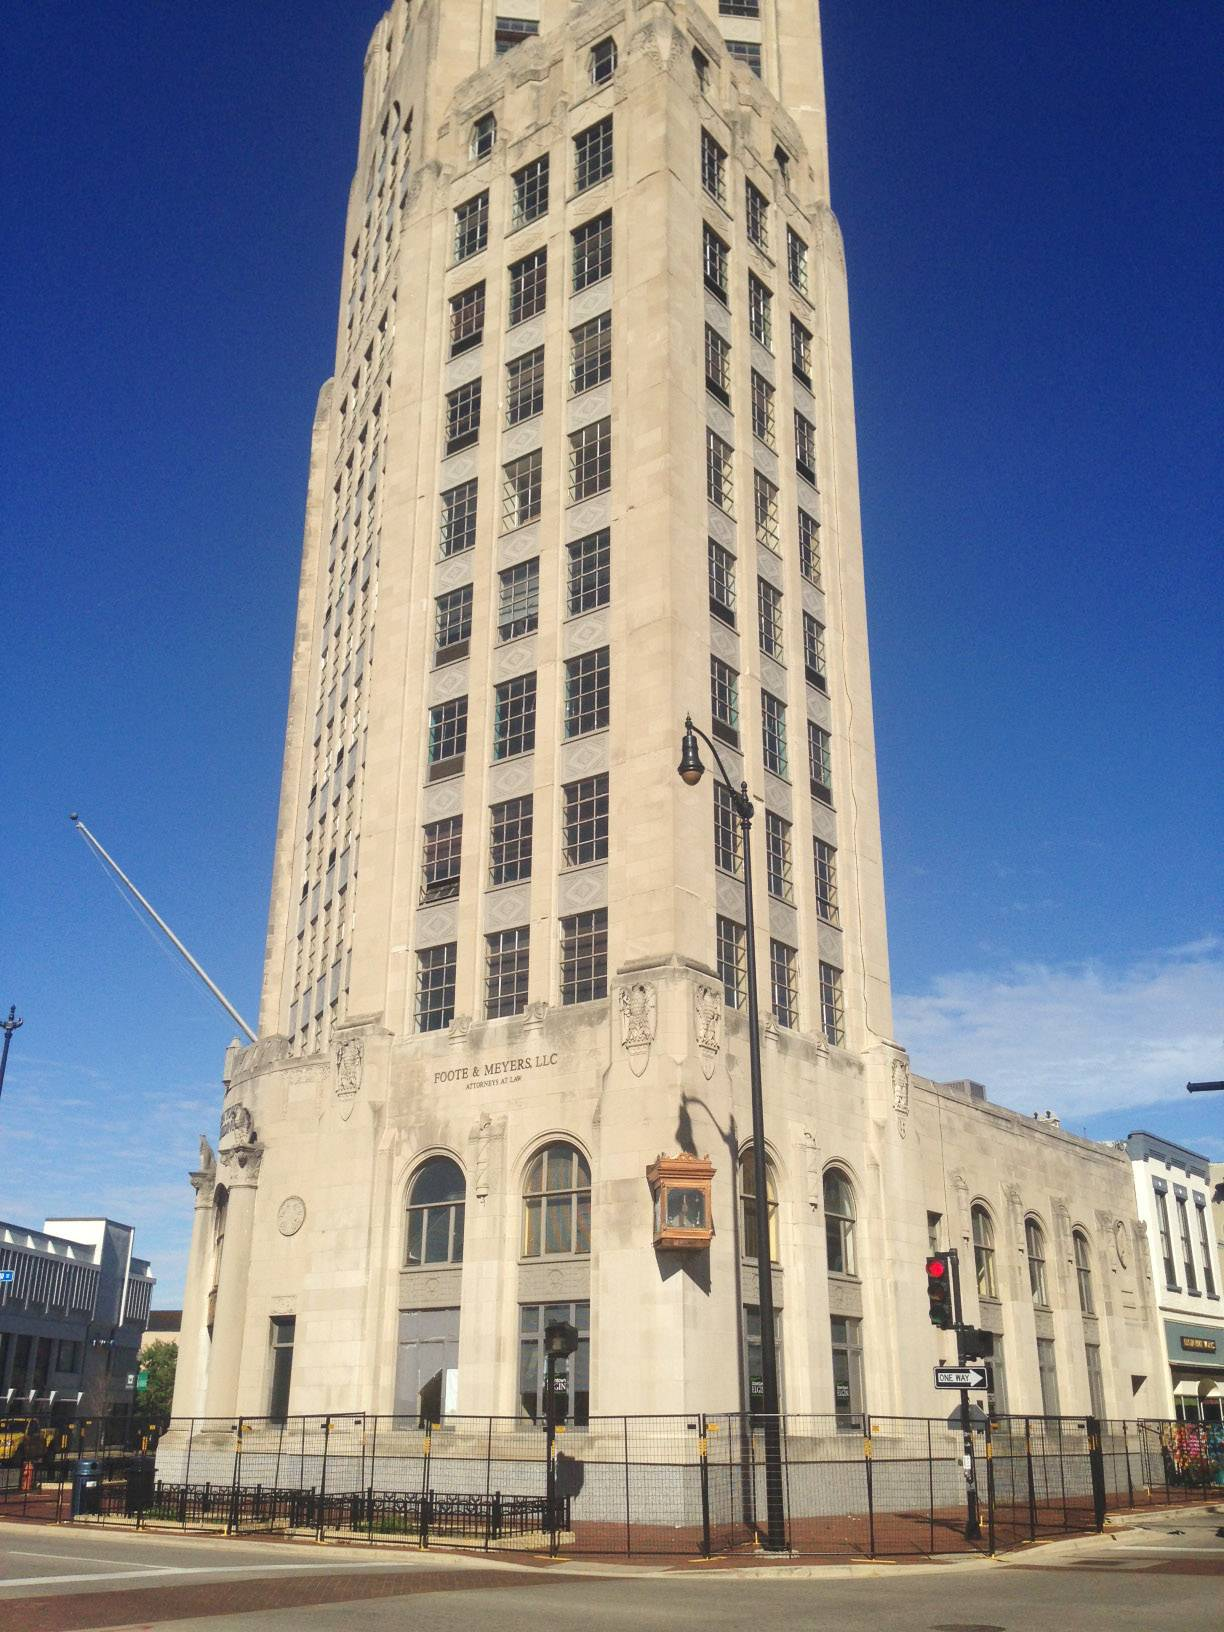 Elgin Tower battles for survival